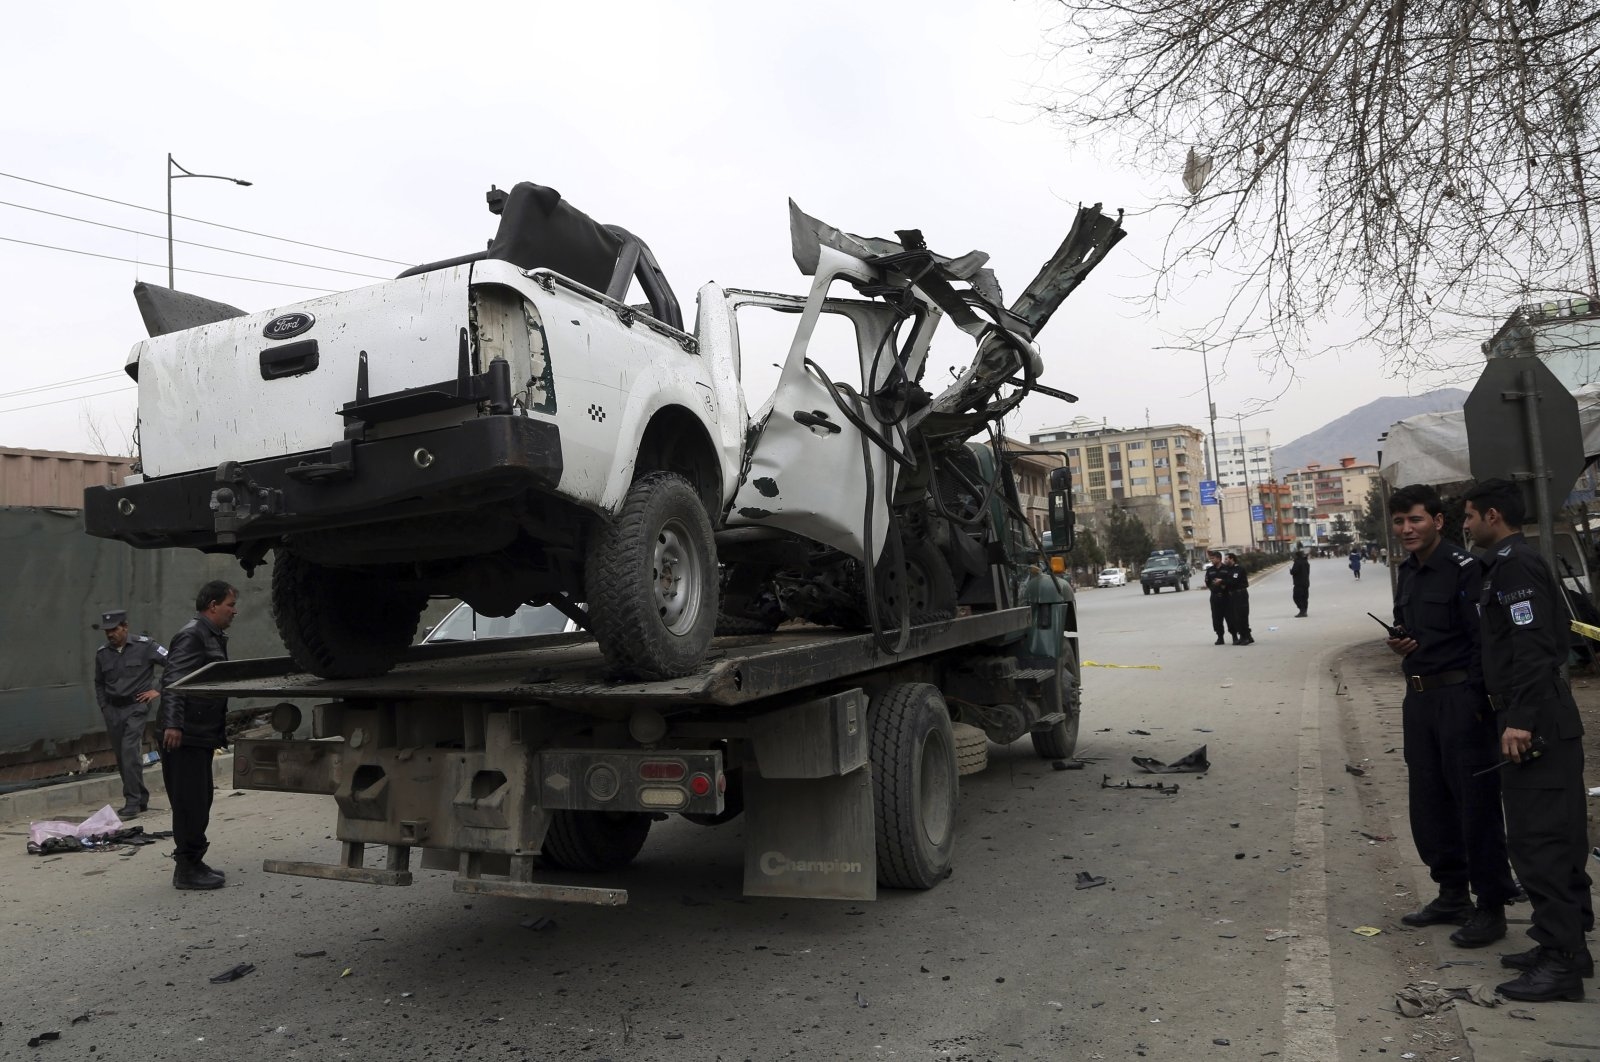 Afghan security personnel removes a damaged vehicle from the site of a bomb attack in Kabul, Afghanistan, Feb. 20, 2021. (AP Photo)